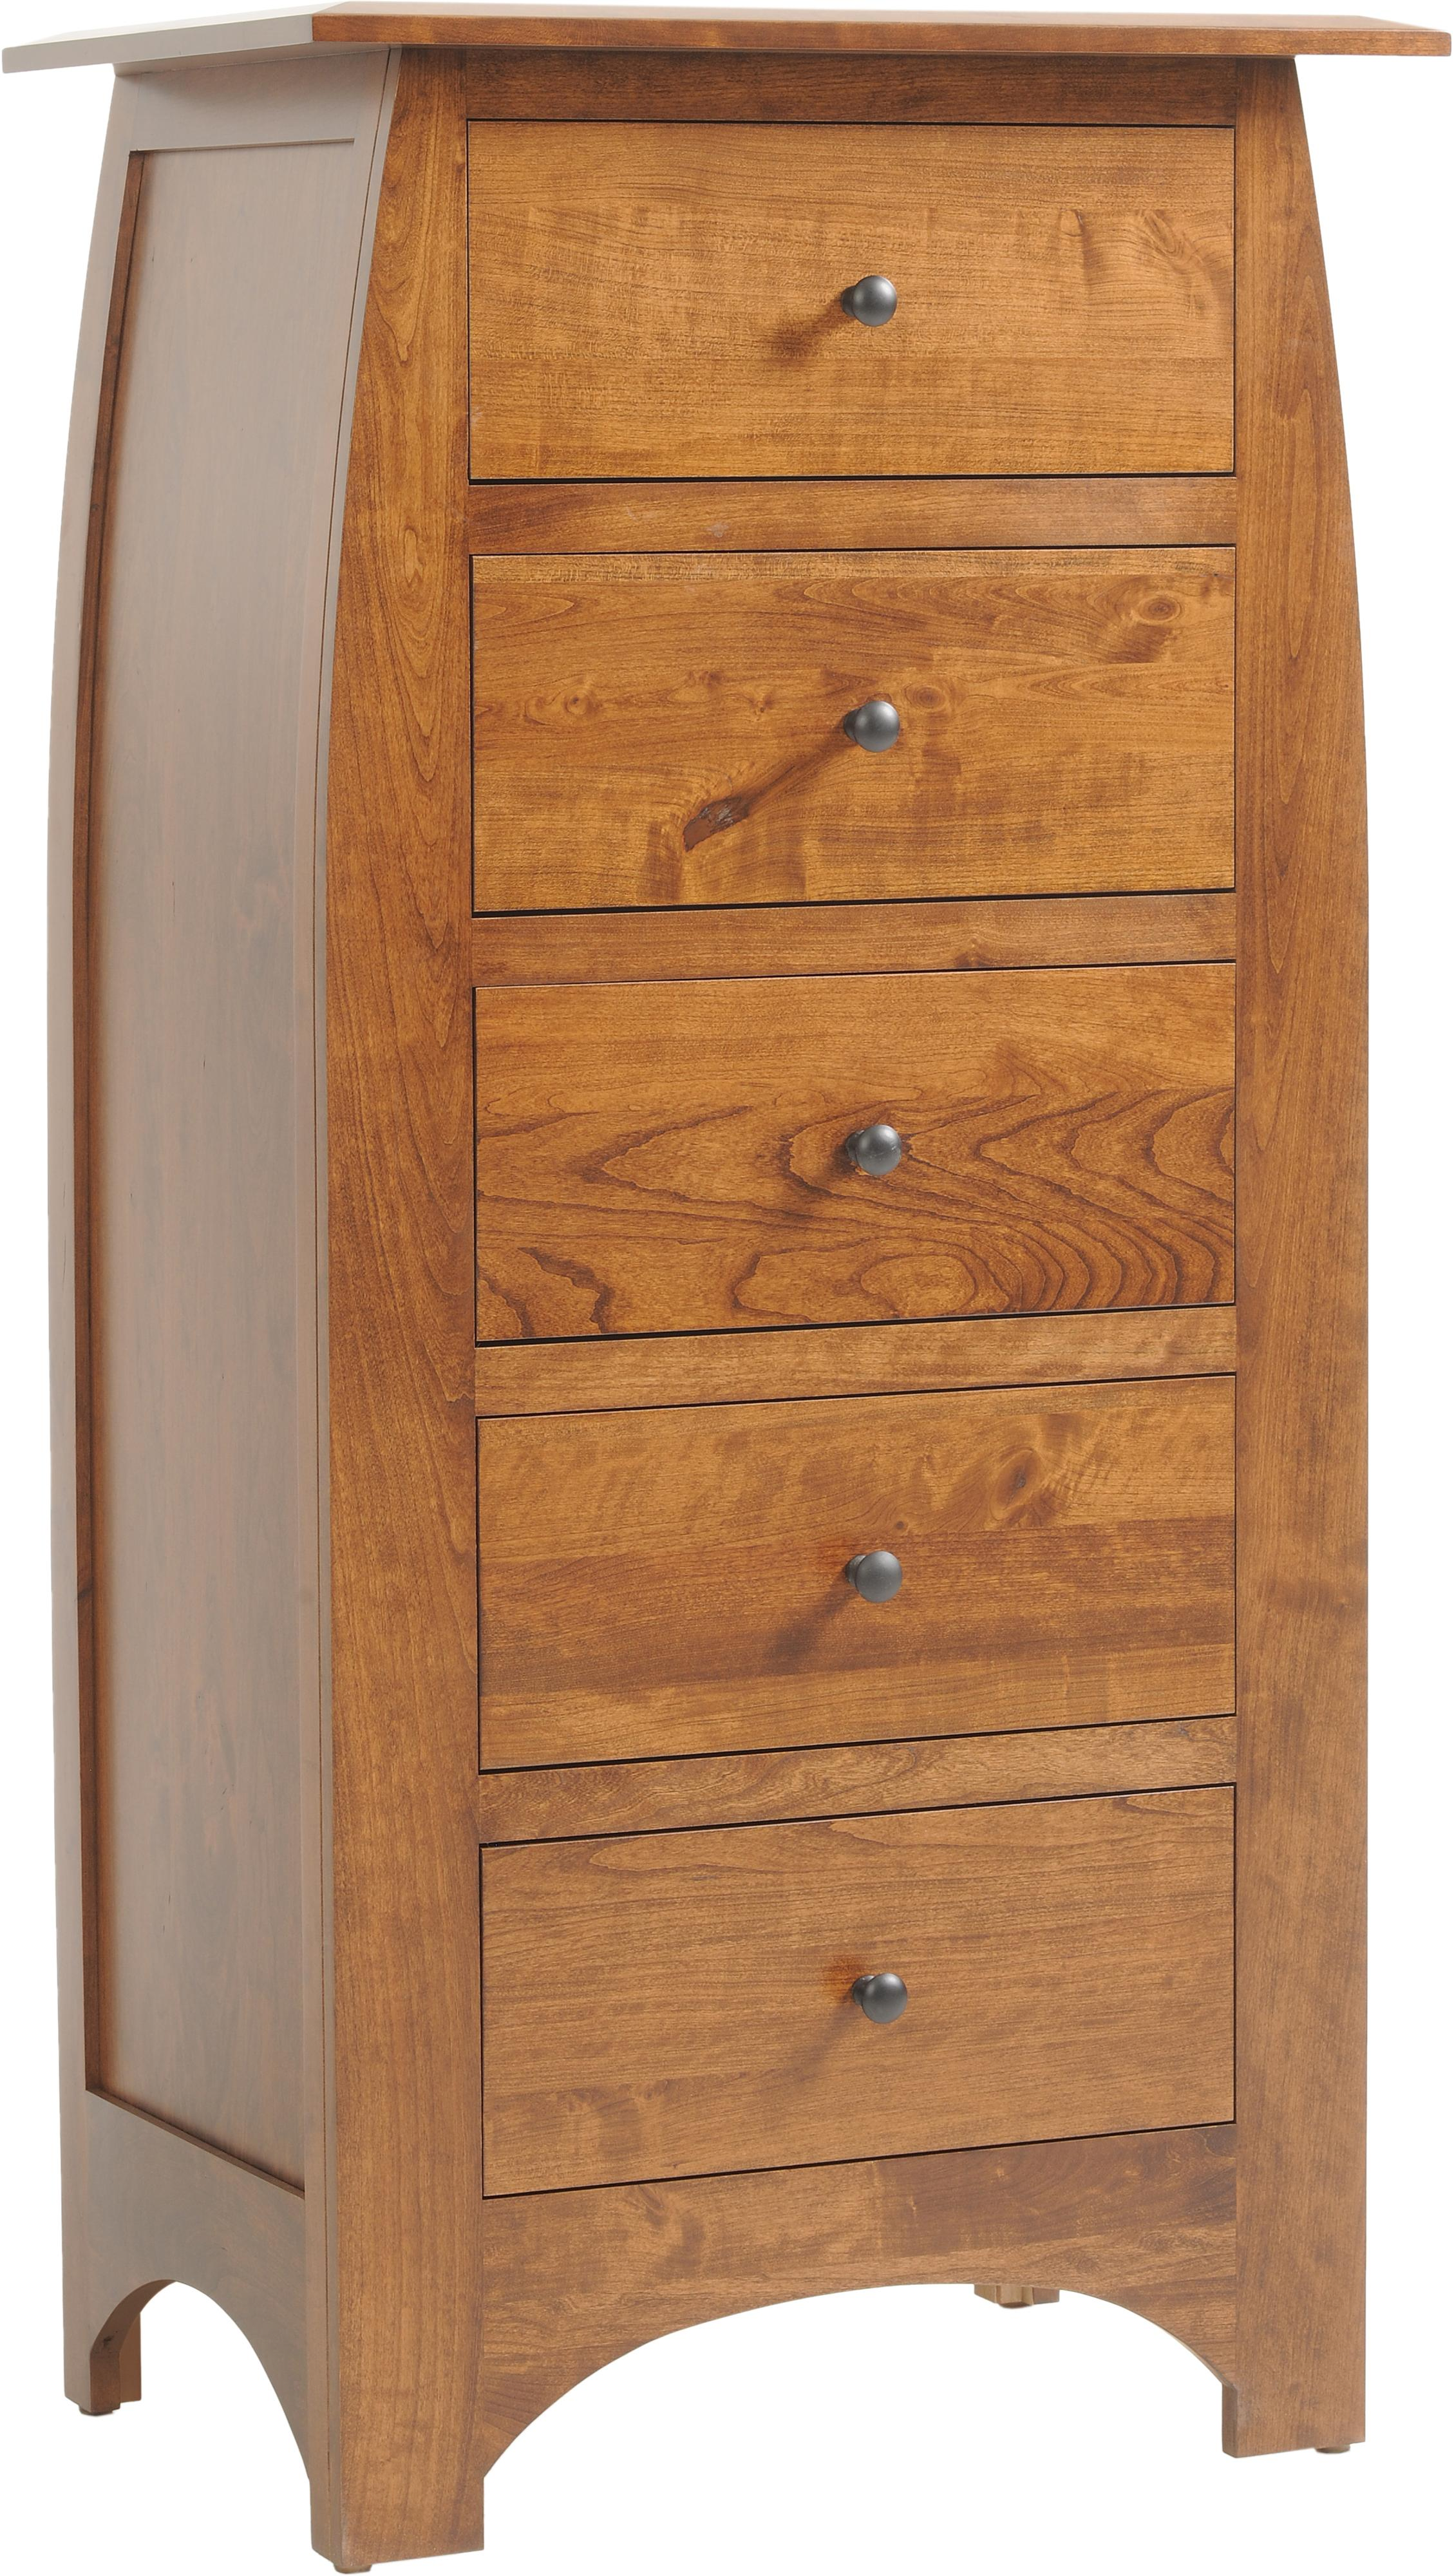 Bordeaux Lingerie Chest by Millcraft at Saugerties Furniture Mart